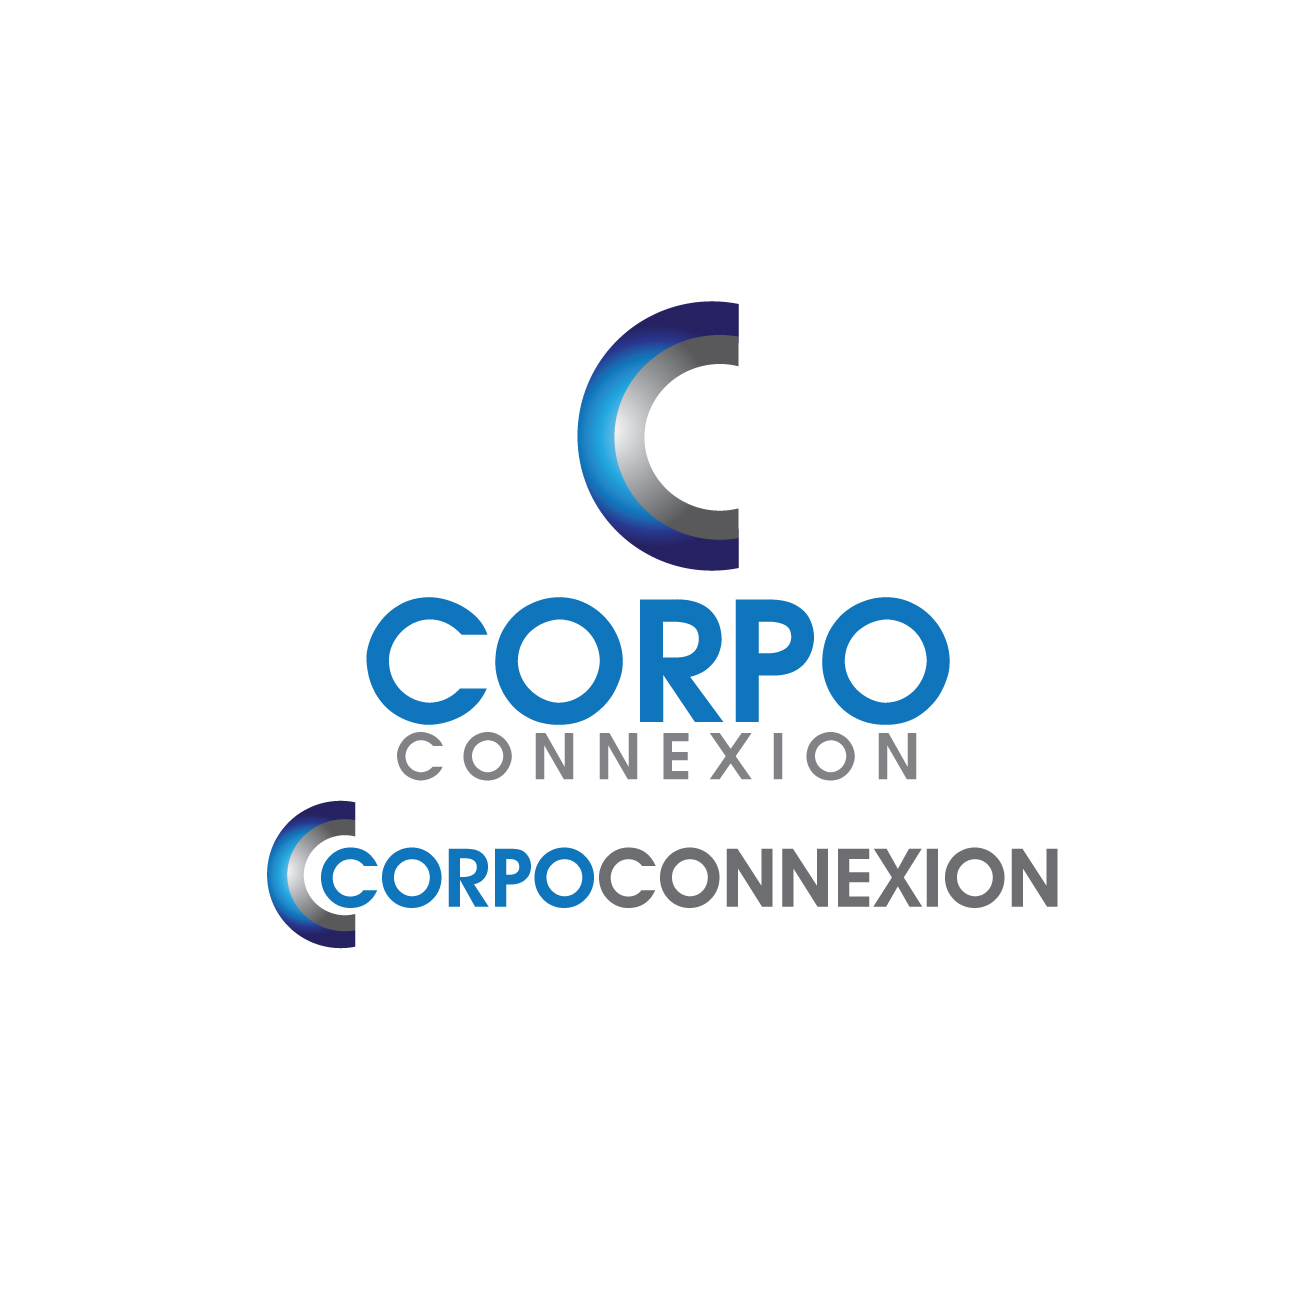 Logo Design by stormbighit - Entry No. 30 in the Logo Design Contest Fun Logo Design for Corpo Connexion.